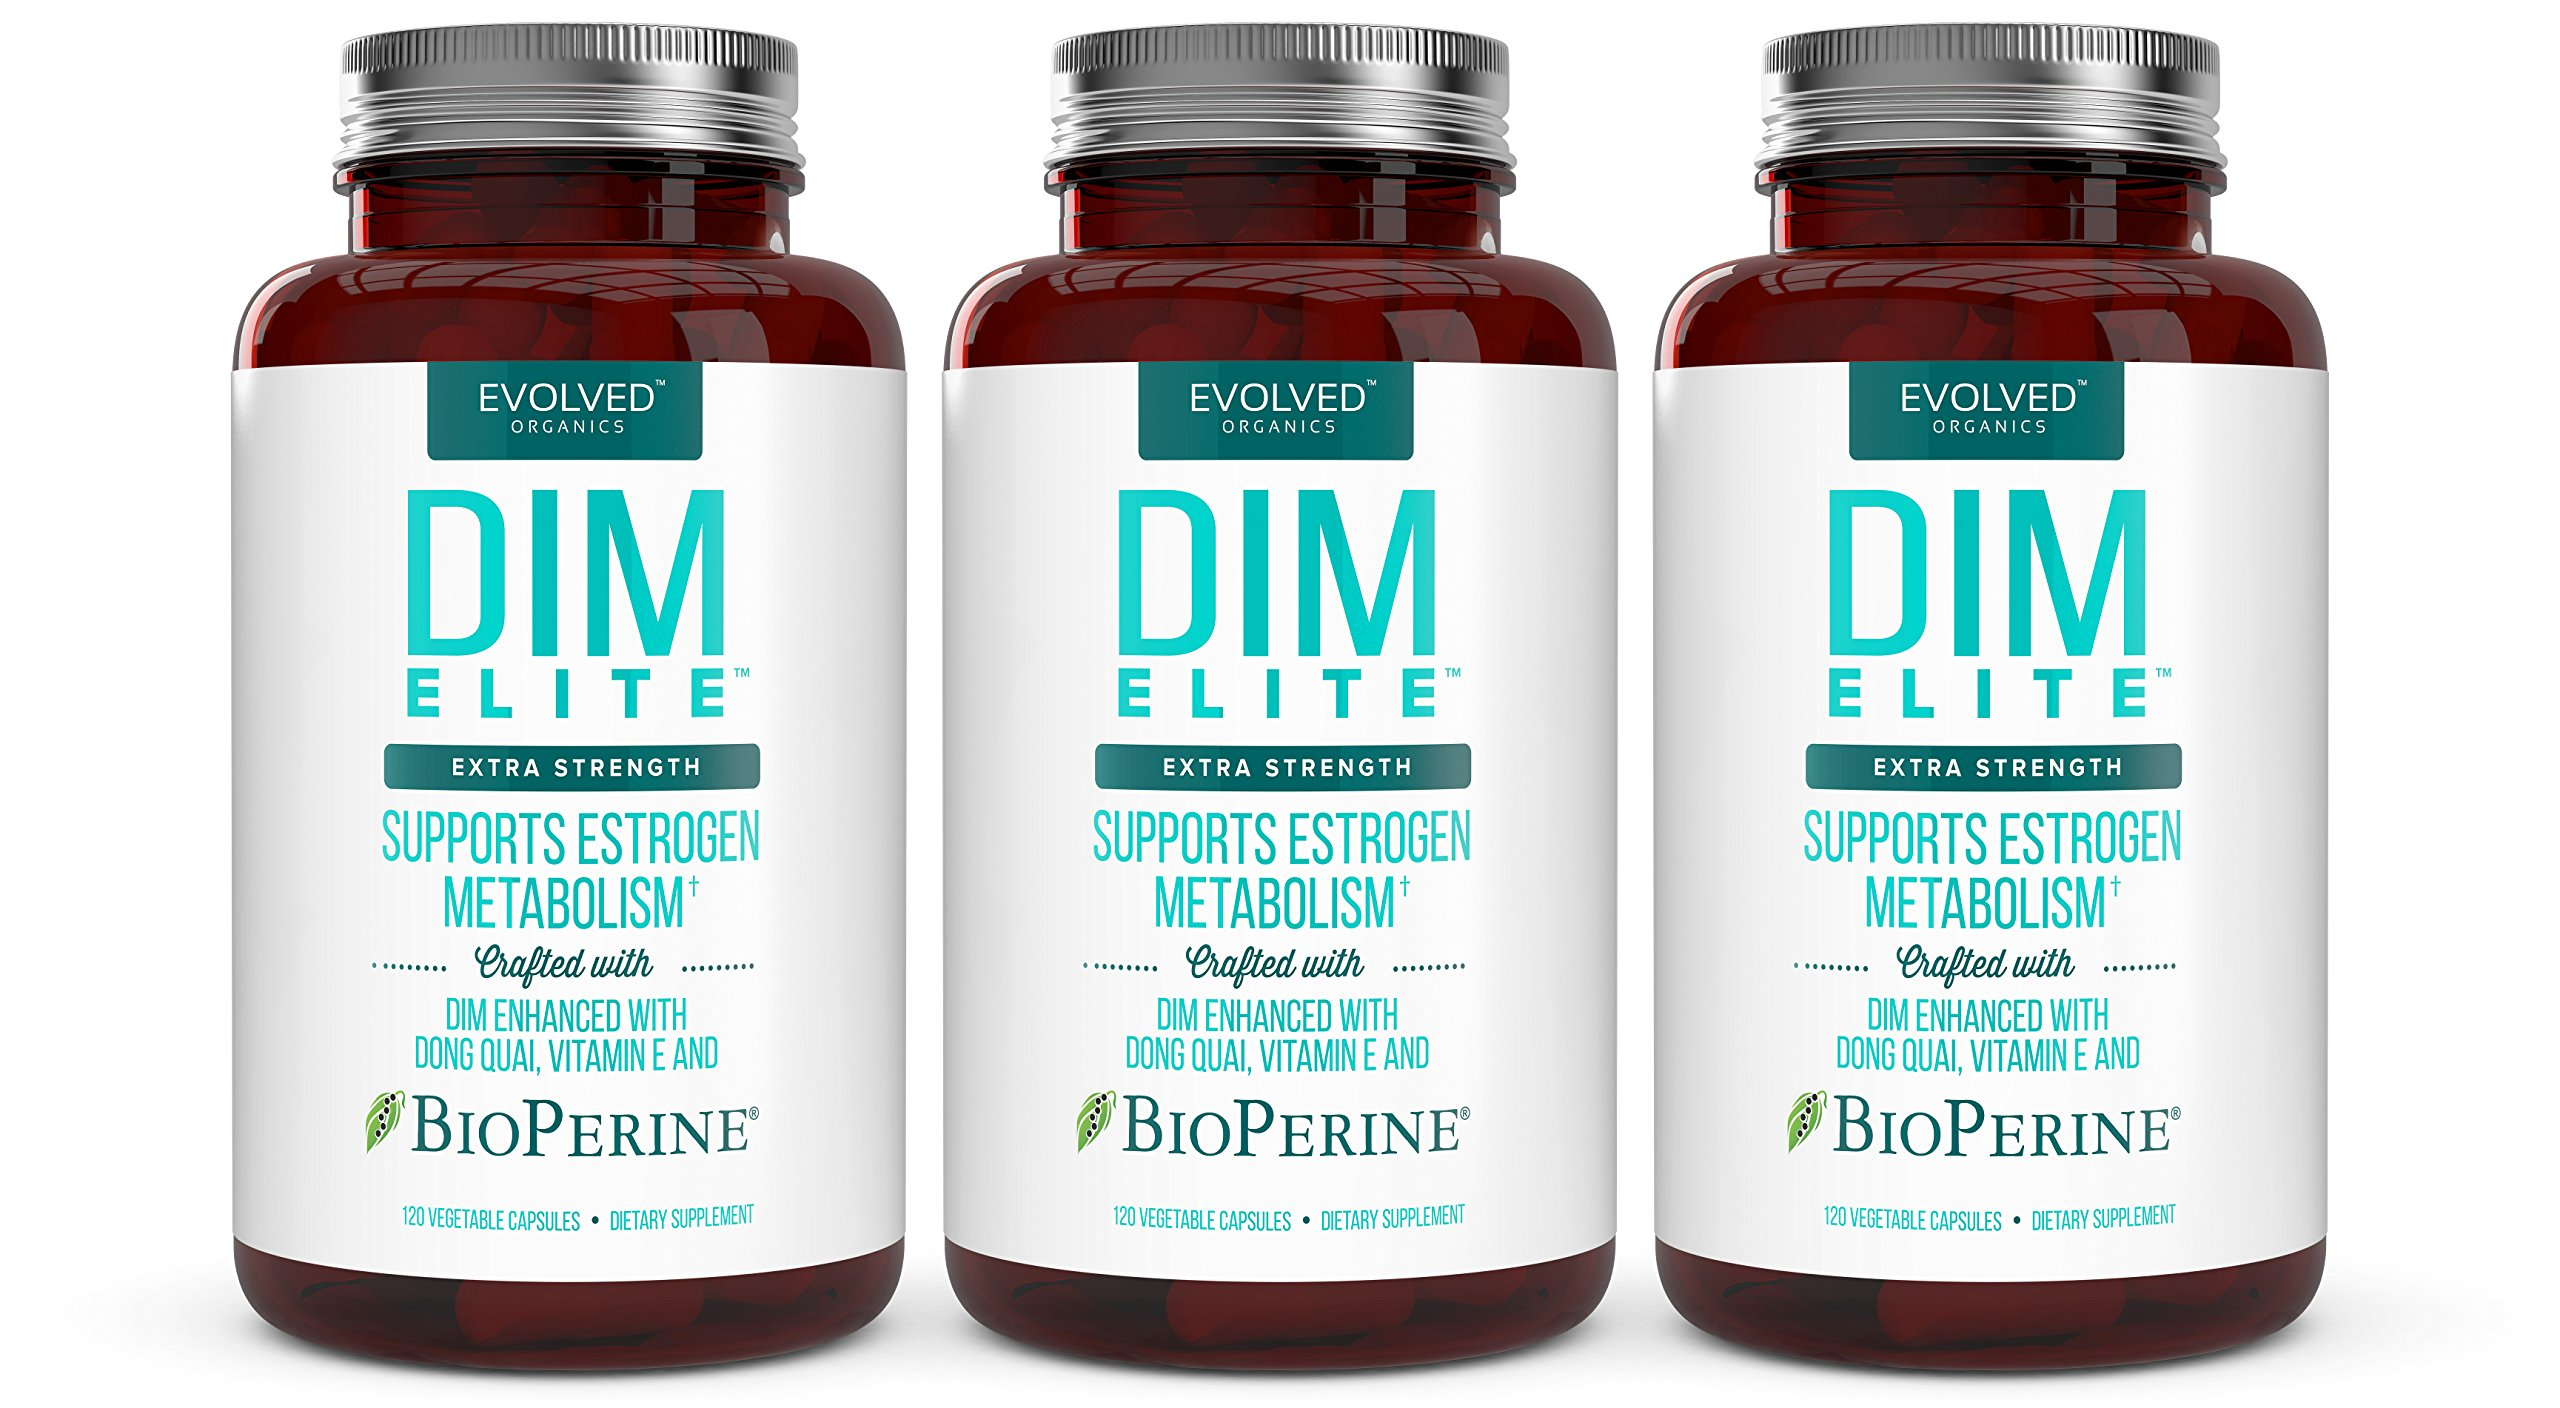 Extra Strength 250mg -plus Dong Quai, Vitamin E & BioPerine (2-4 month supply) Each Bottle -DIM Supplement for Menopause Relief, PCOS Treatment & Hormonal Acne Treatment - Aromatase Inhibitor (3 Pack)